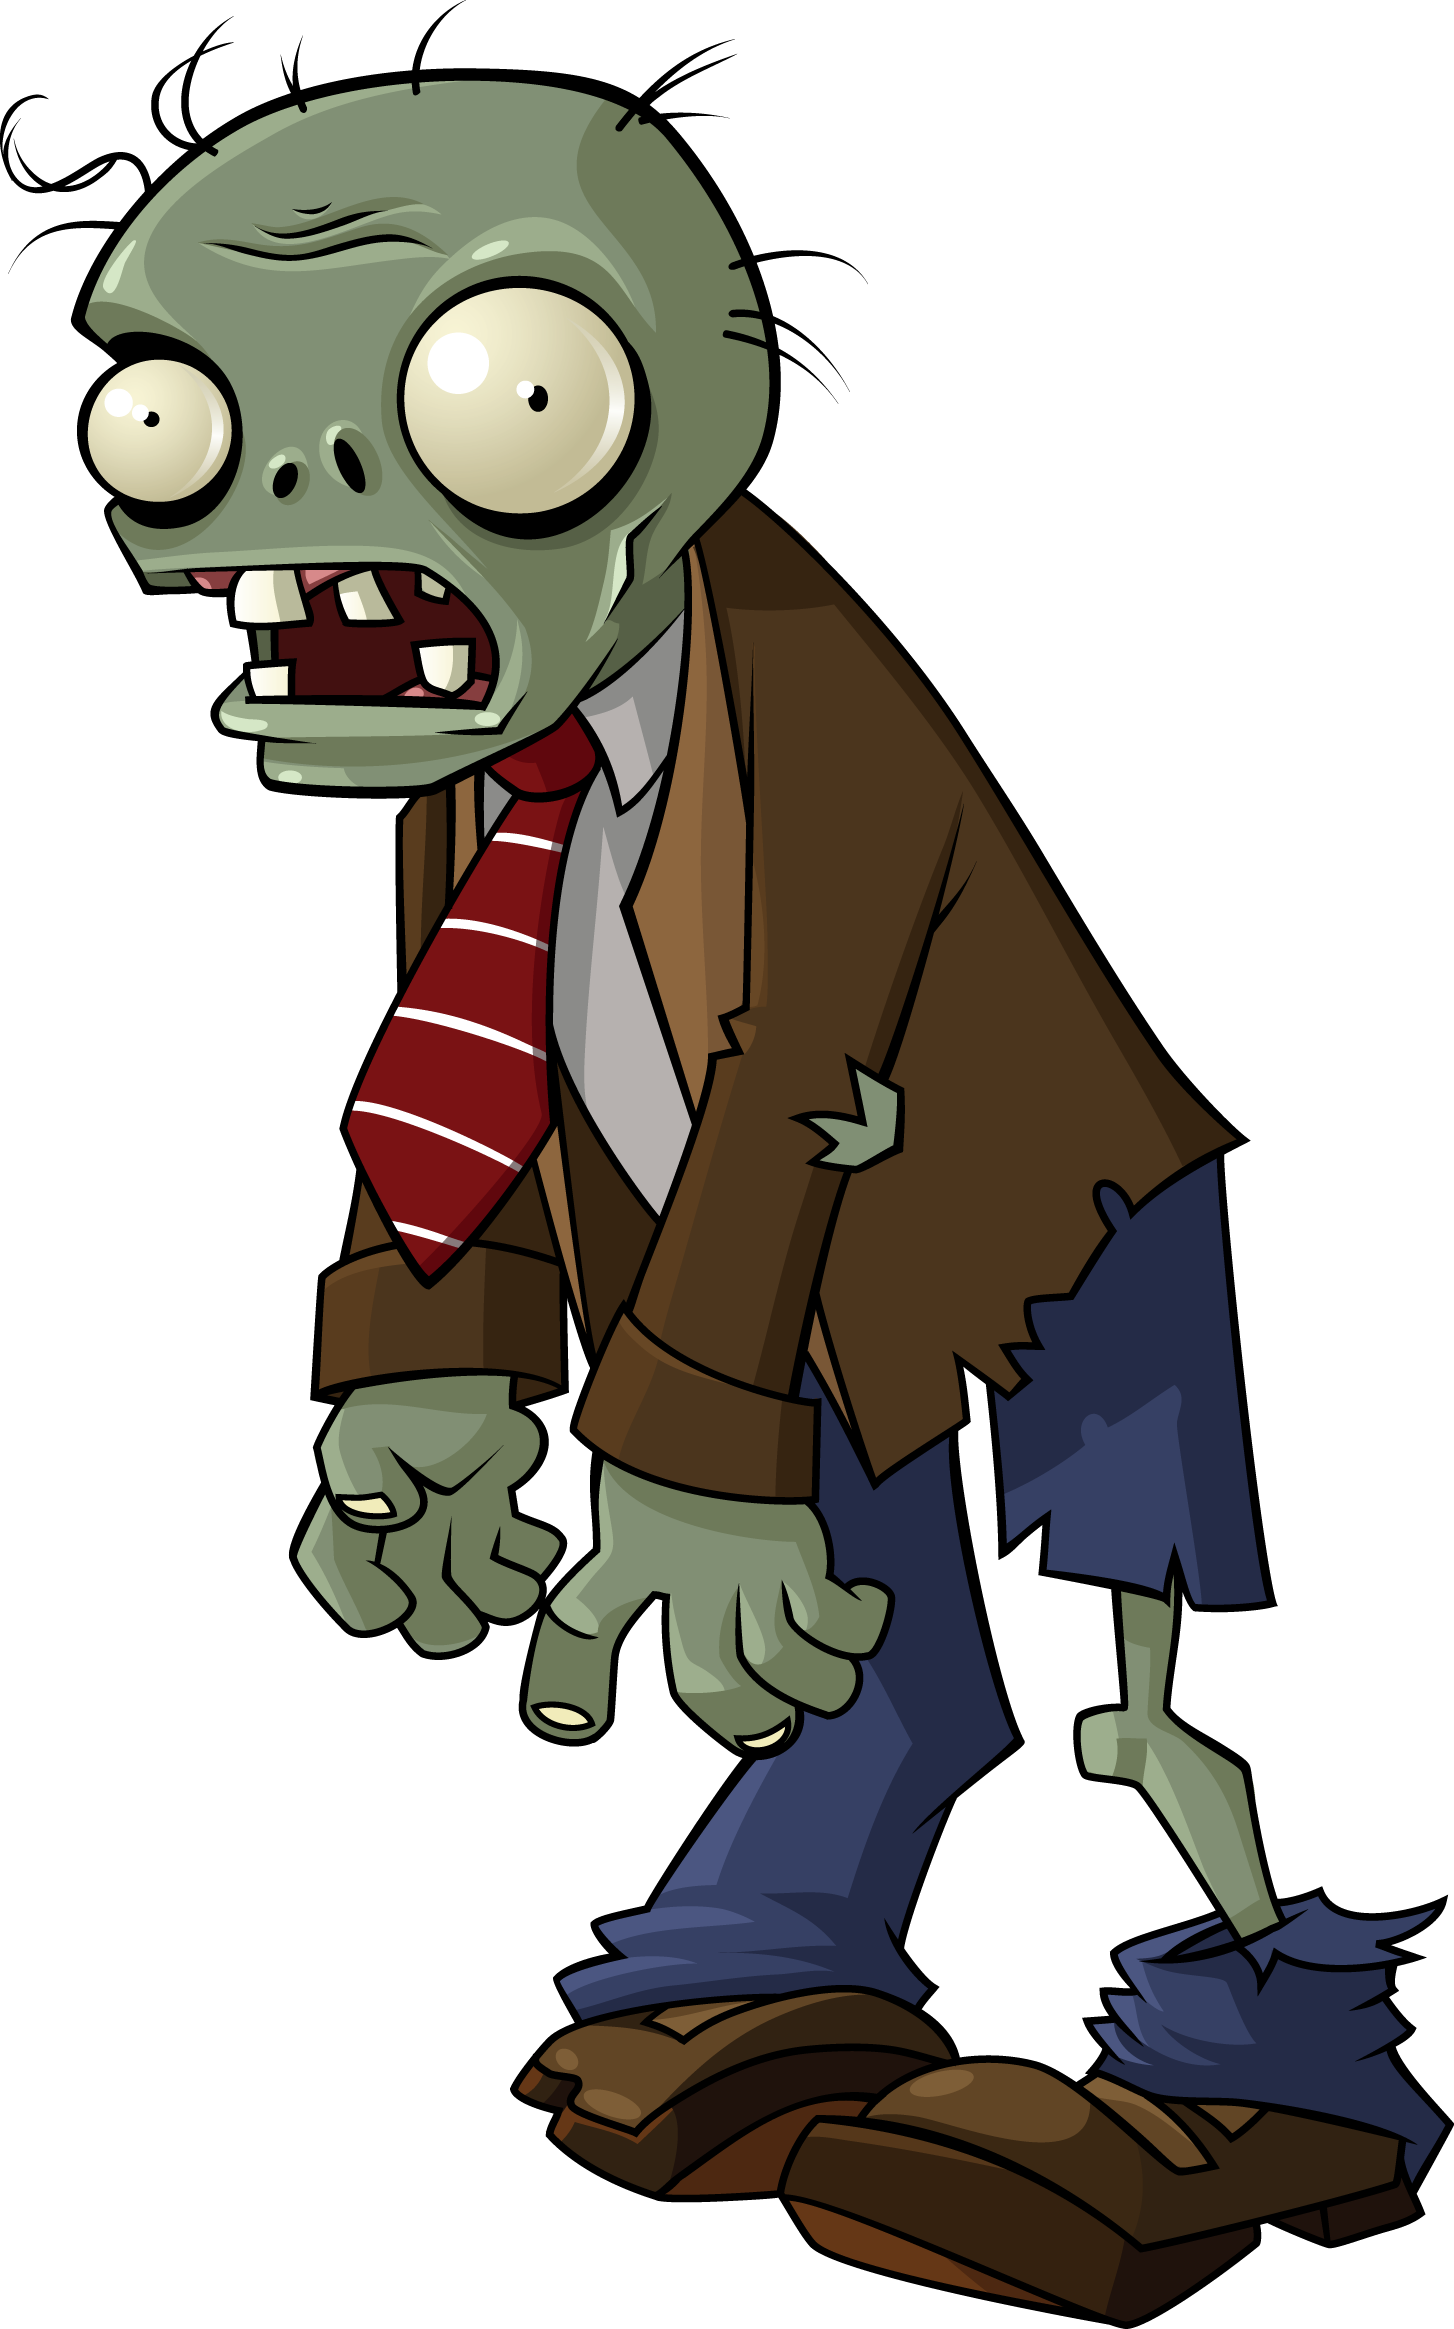 Plants vs zombies zombie characters png. Villains wiki fandom powered